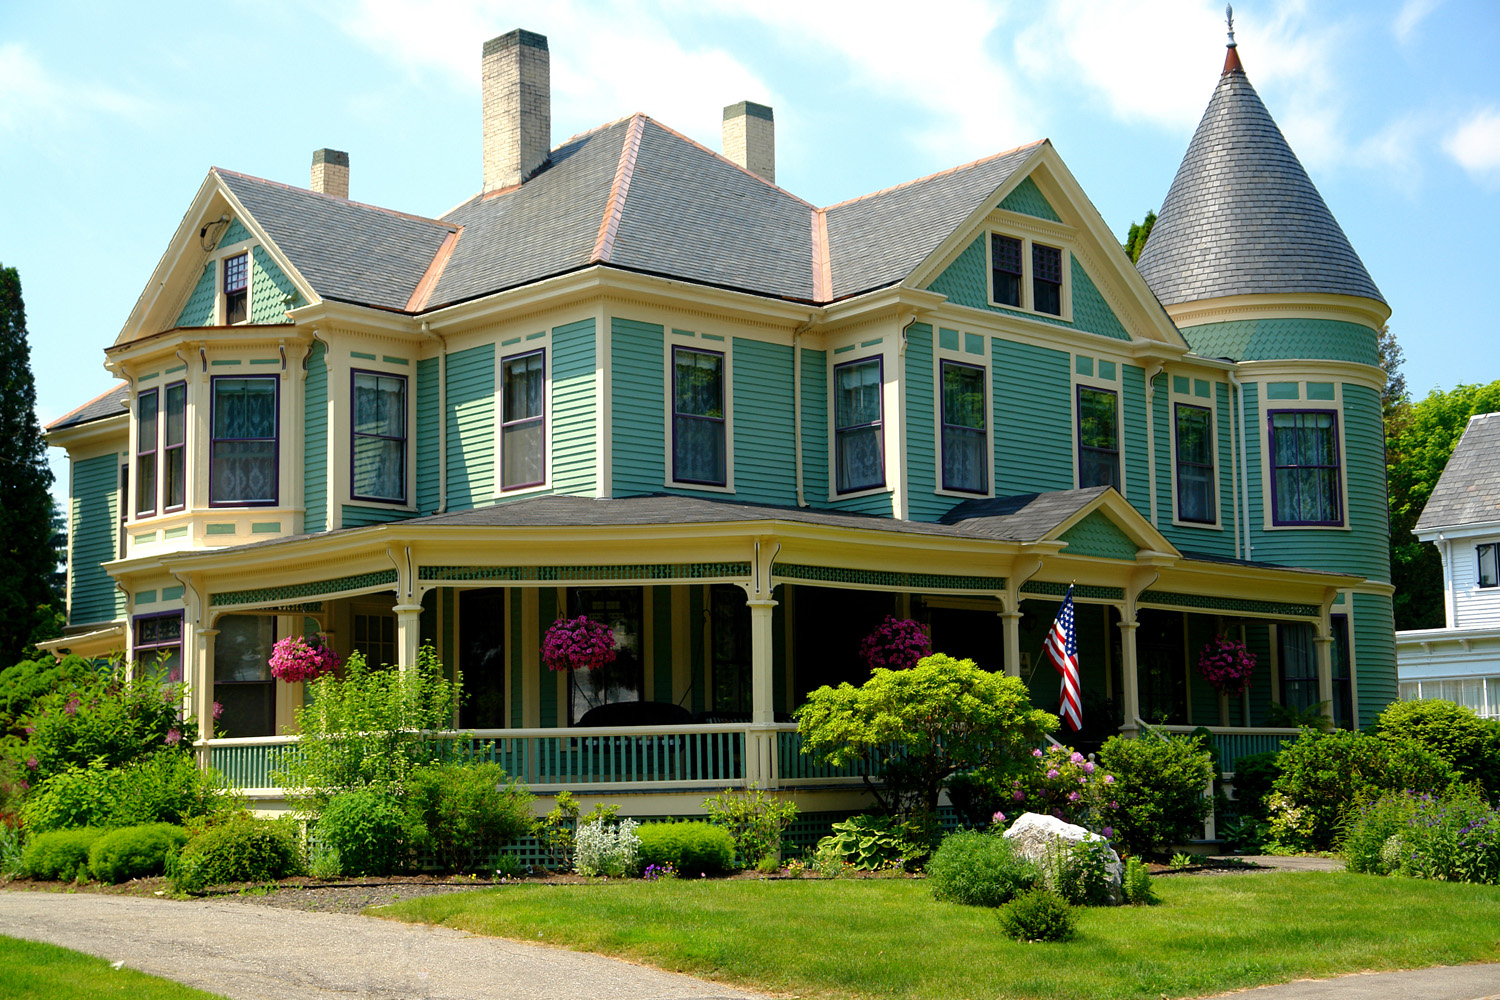 Your home away from home - Situated in the historic neighborhood district, LimeRock Inn is steps away from a visit to the mid-coast region's world-class Farnsworth Art Museum & Wyeth, fine dining, European style shopping, and what Down East magazine referred to as